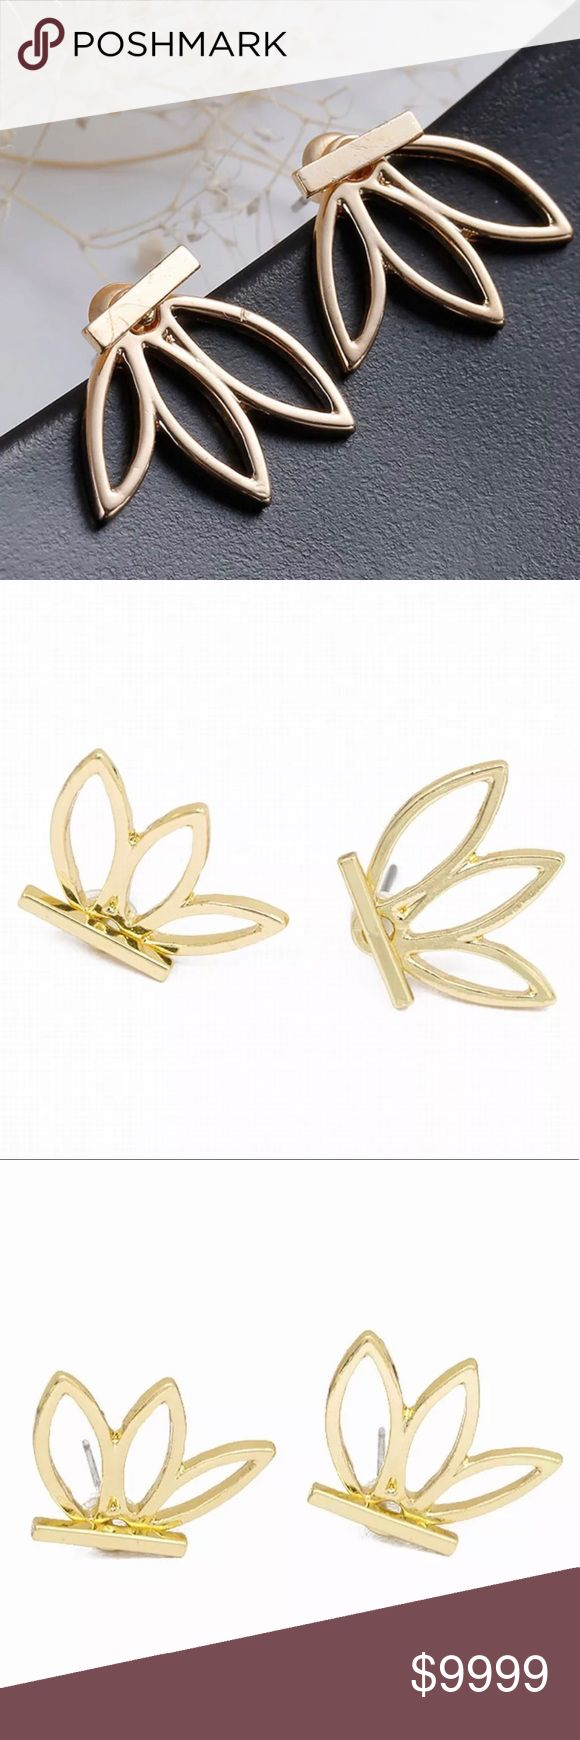 "🔜Gold Lotus Jacket Stud Earrings! Coming Soon! ""Like"" Listing to be Notified Of Arrival! On Trend, Lotus Flower; Wear multiple ways! Studs, Flower in front or in back of earlobe; Popular style few years in a row now! Available in Silver as well!  *NO TRADES *Prices are FIRM-Listed at Lowest Price Unless BUNDLED! *Sales are Final-Please Read Descriptions! gallery_of_gems Jewelry Earrings"